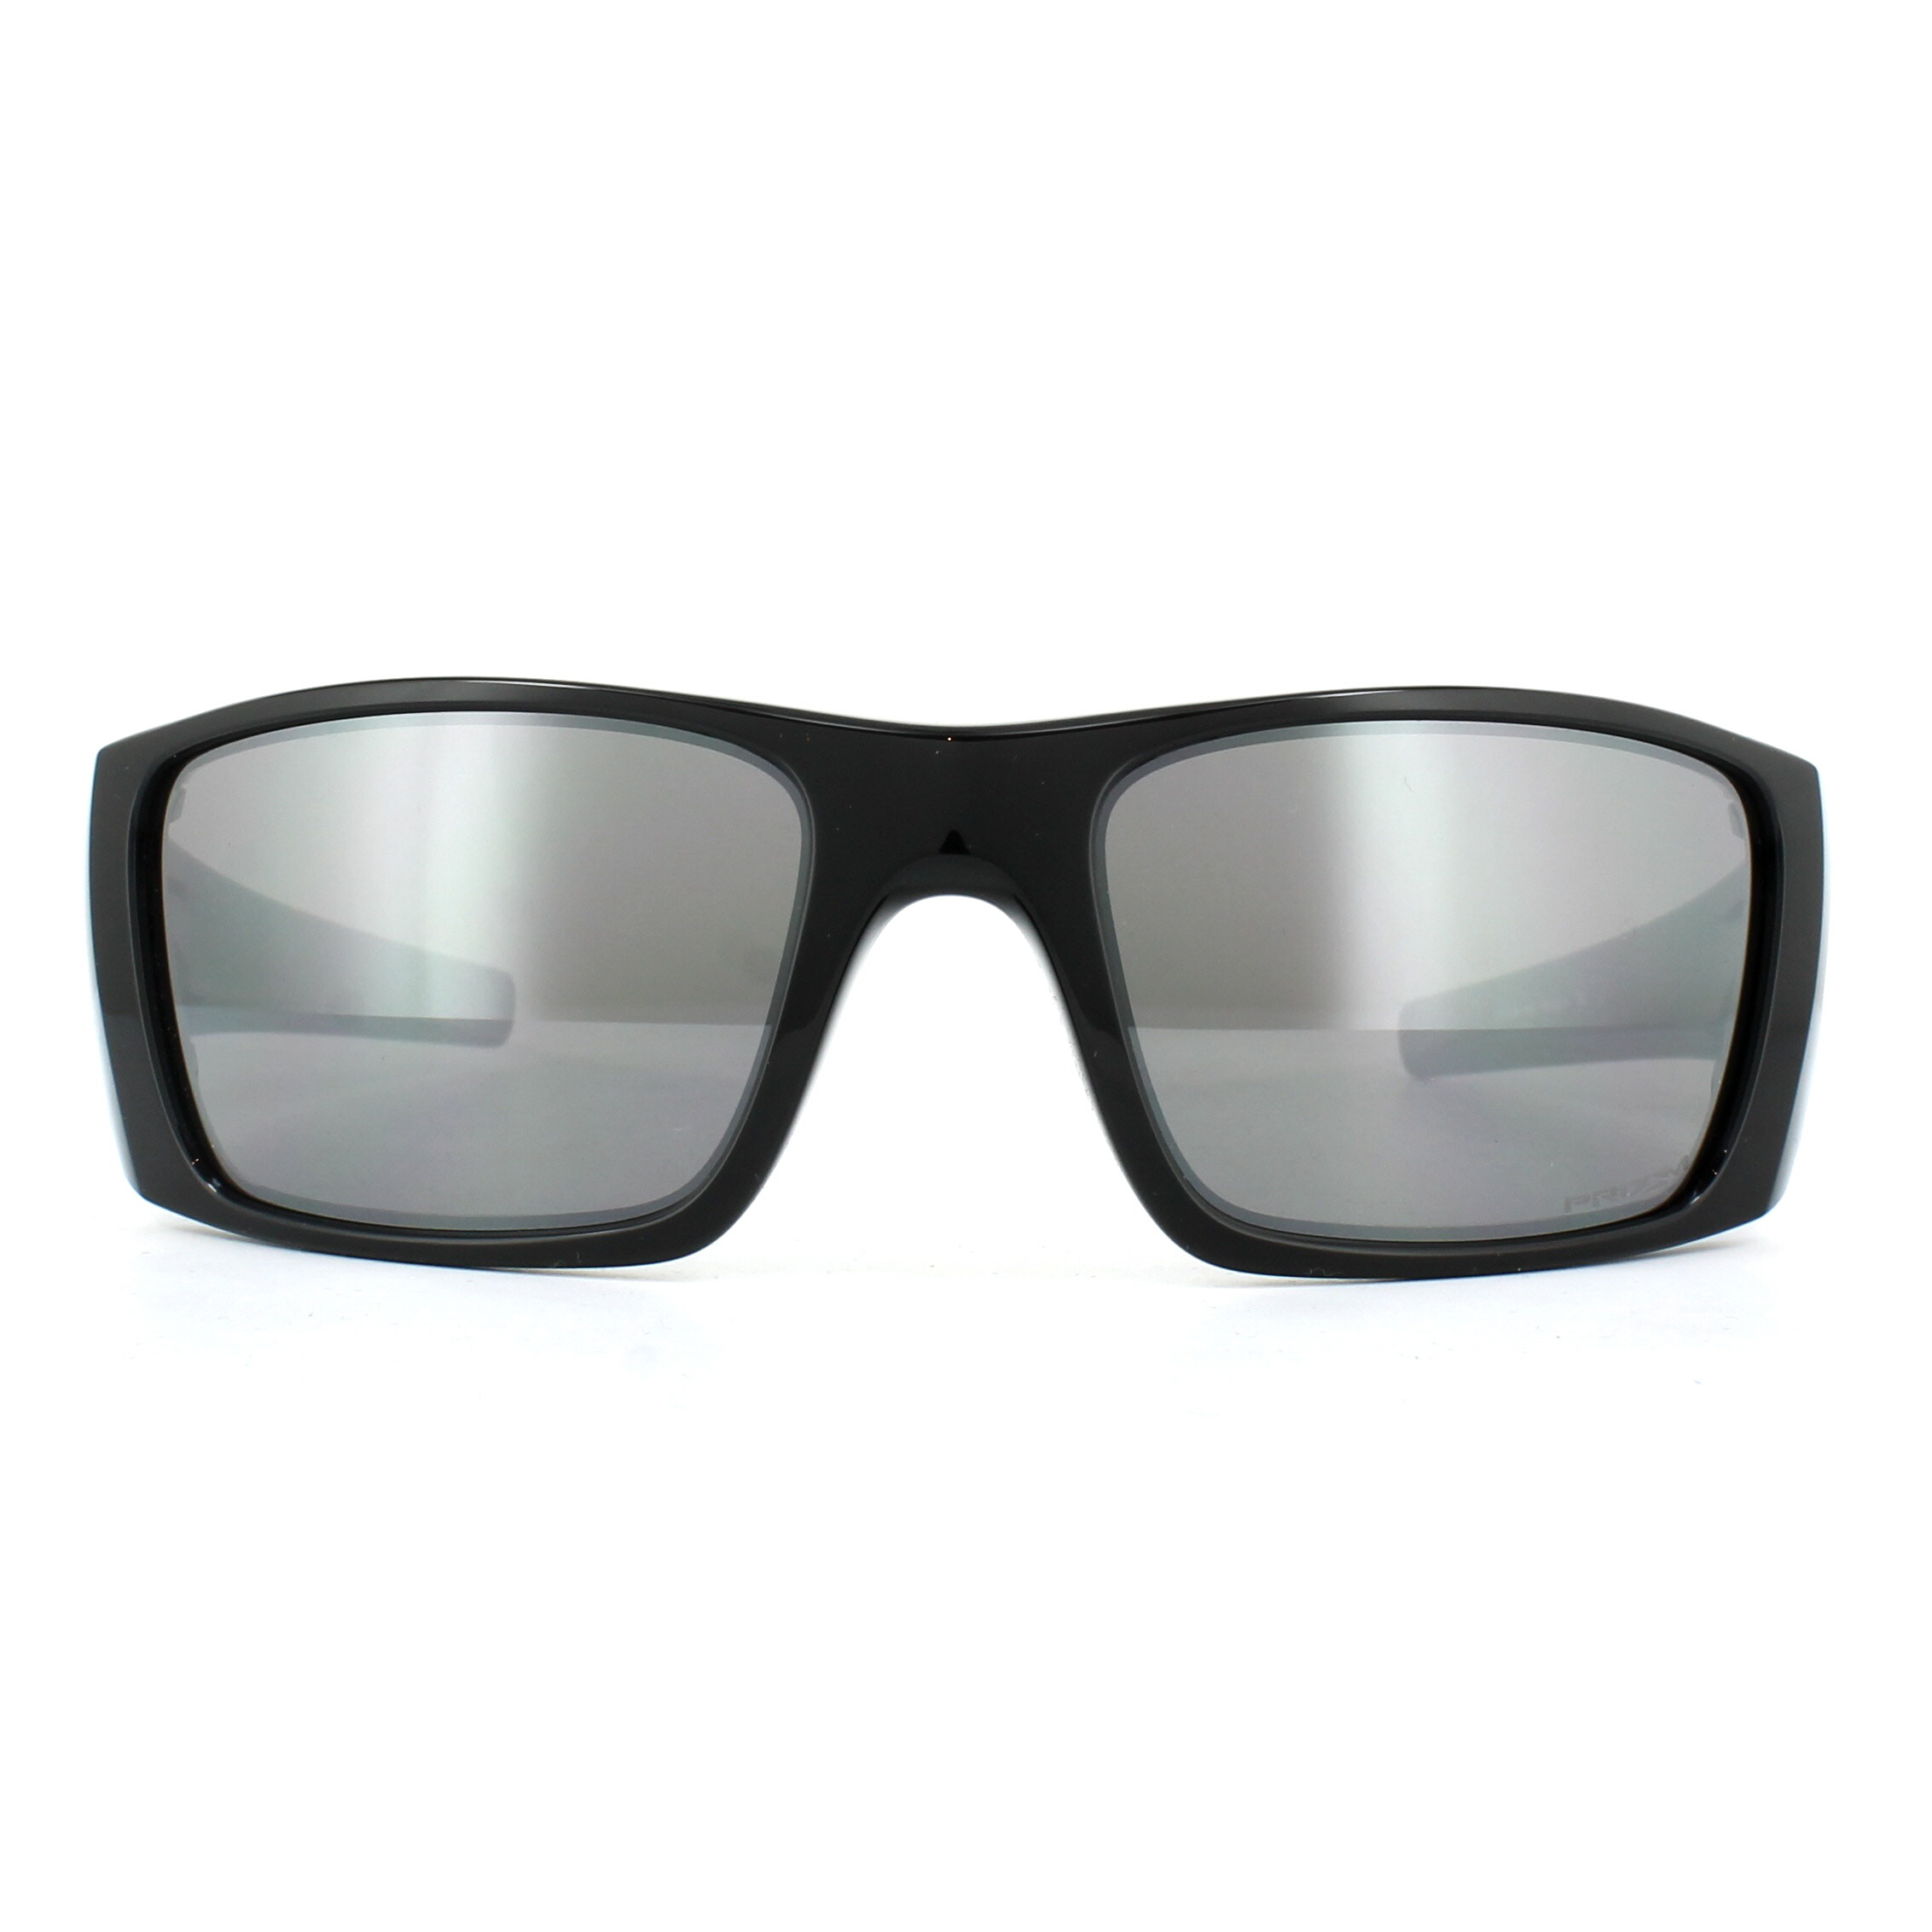 0c2d7f1ae77 ... shop sentinel oakley sunglasses fuel cell oo9096 j5 polished black  prizm black 85768 3a8ea